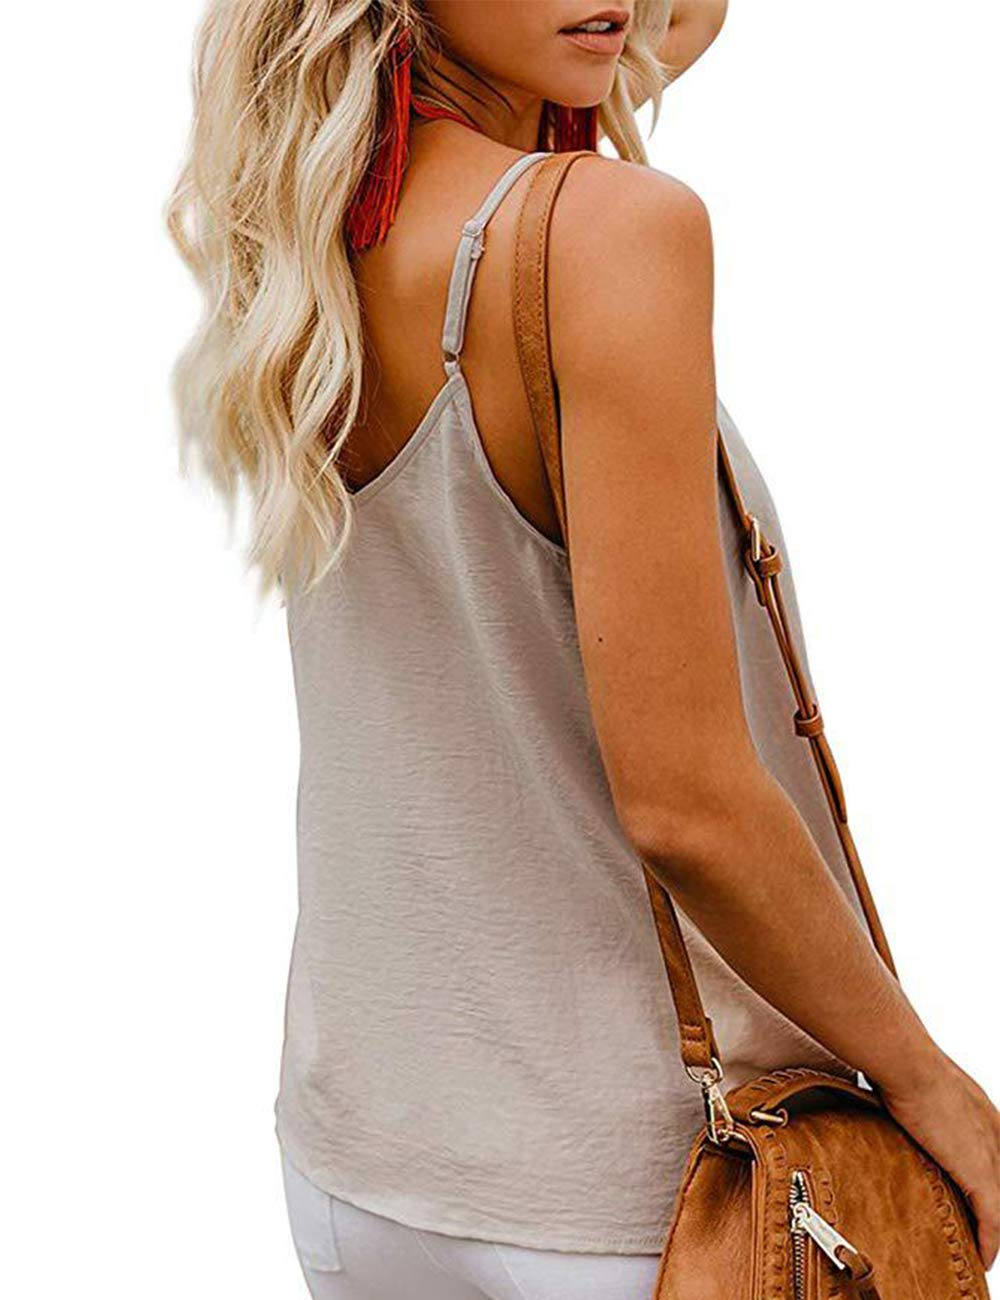 RSM&CHENG Women's Button Down V Neck Strappy Tank Tops Loose Casual Sleeveless Shirts Blouses(Apricot,L)